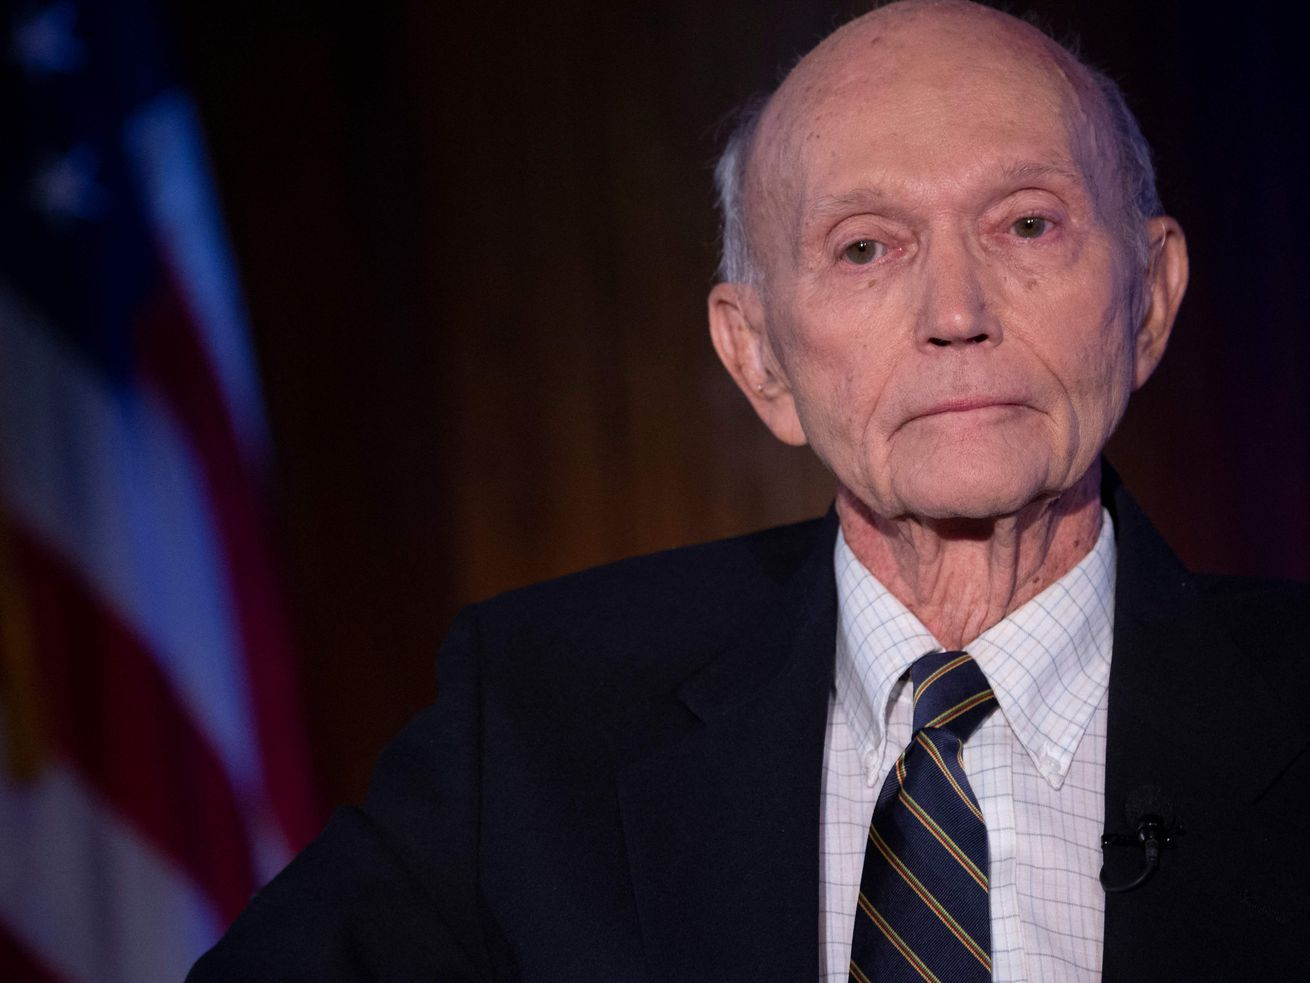 In this file photo US Apollo 11 astronaut Michael Collins is seen at the National Press Club in Washington, DC, to discuss the impact of his historic mission to the moon on April 15, 2019. Collins, who flew the Apollo 11 command module while his crewmates became the first people to land on the Moon in 1969, died on April 28, 2021 after battling cancer, his family said.